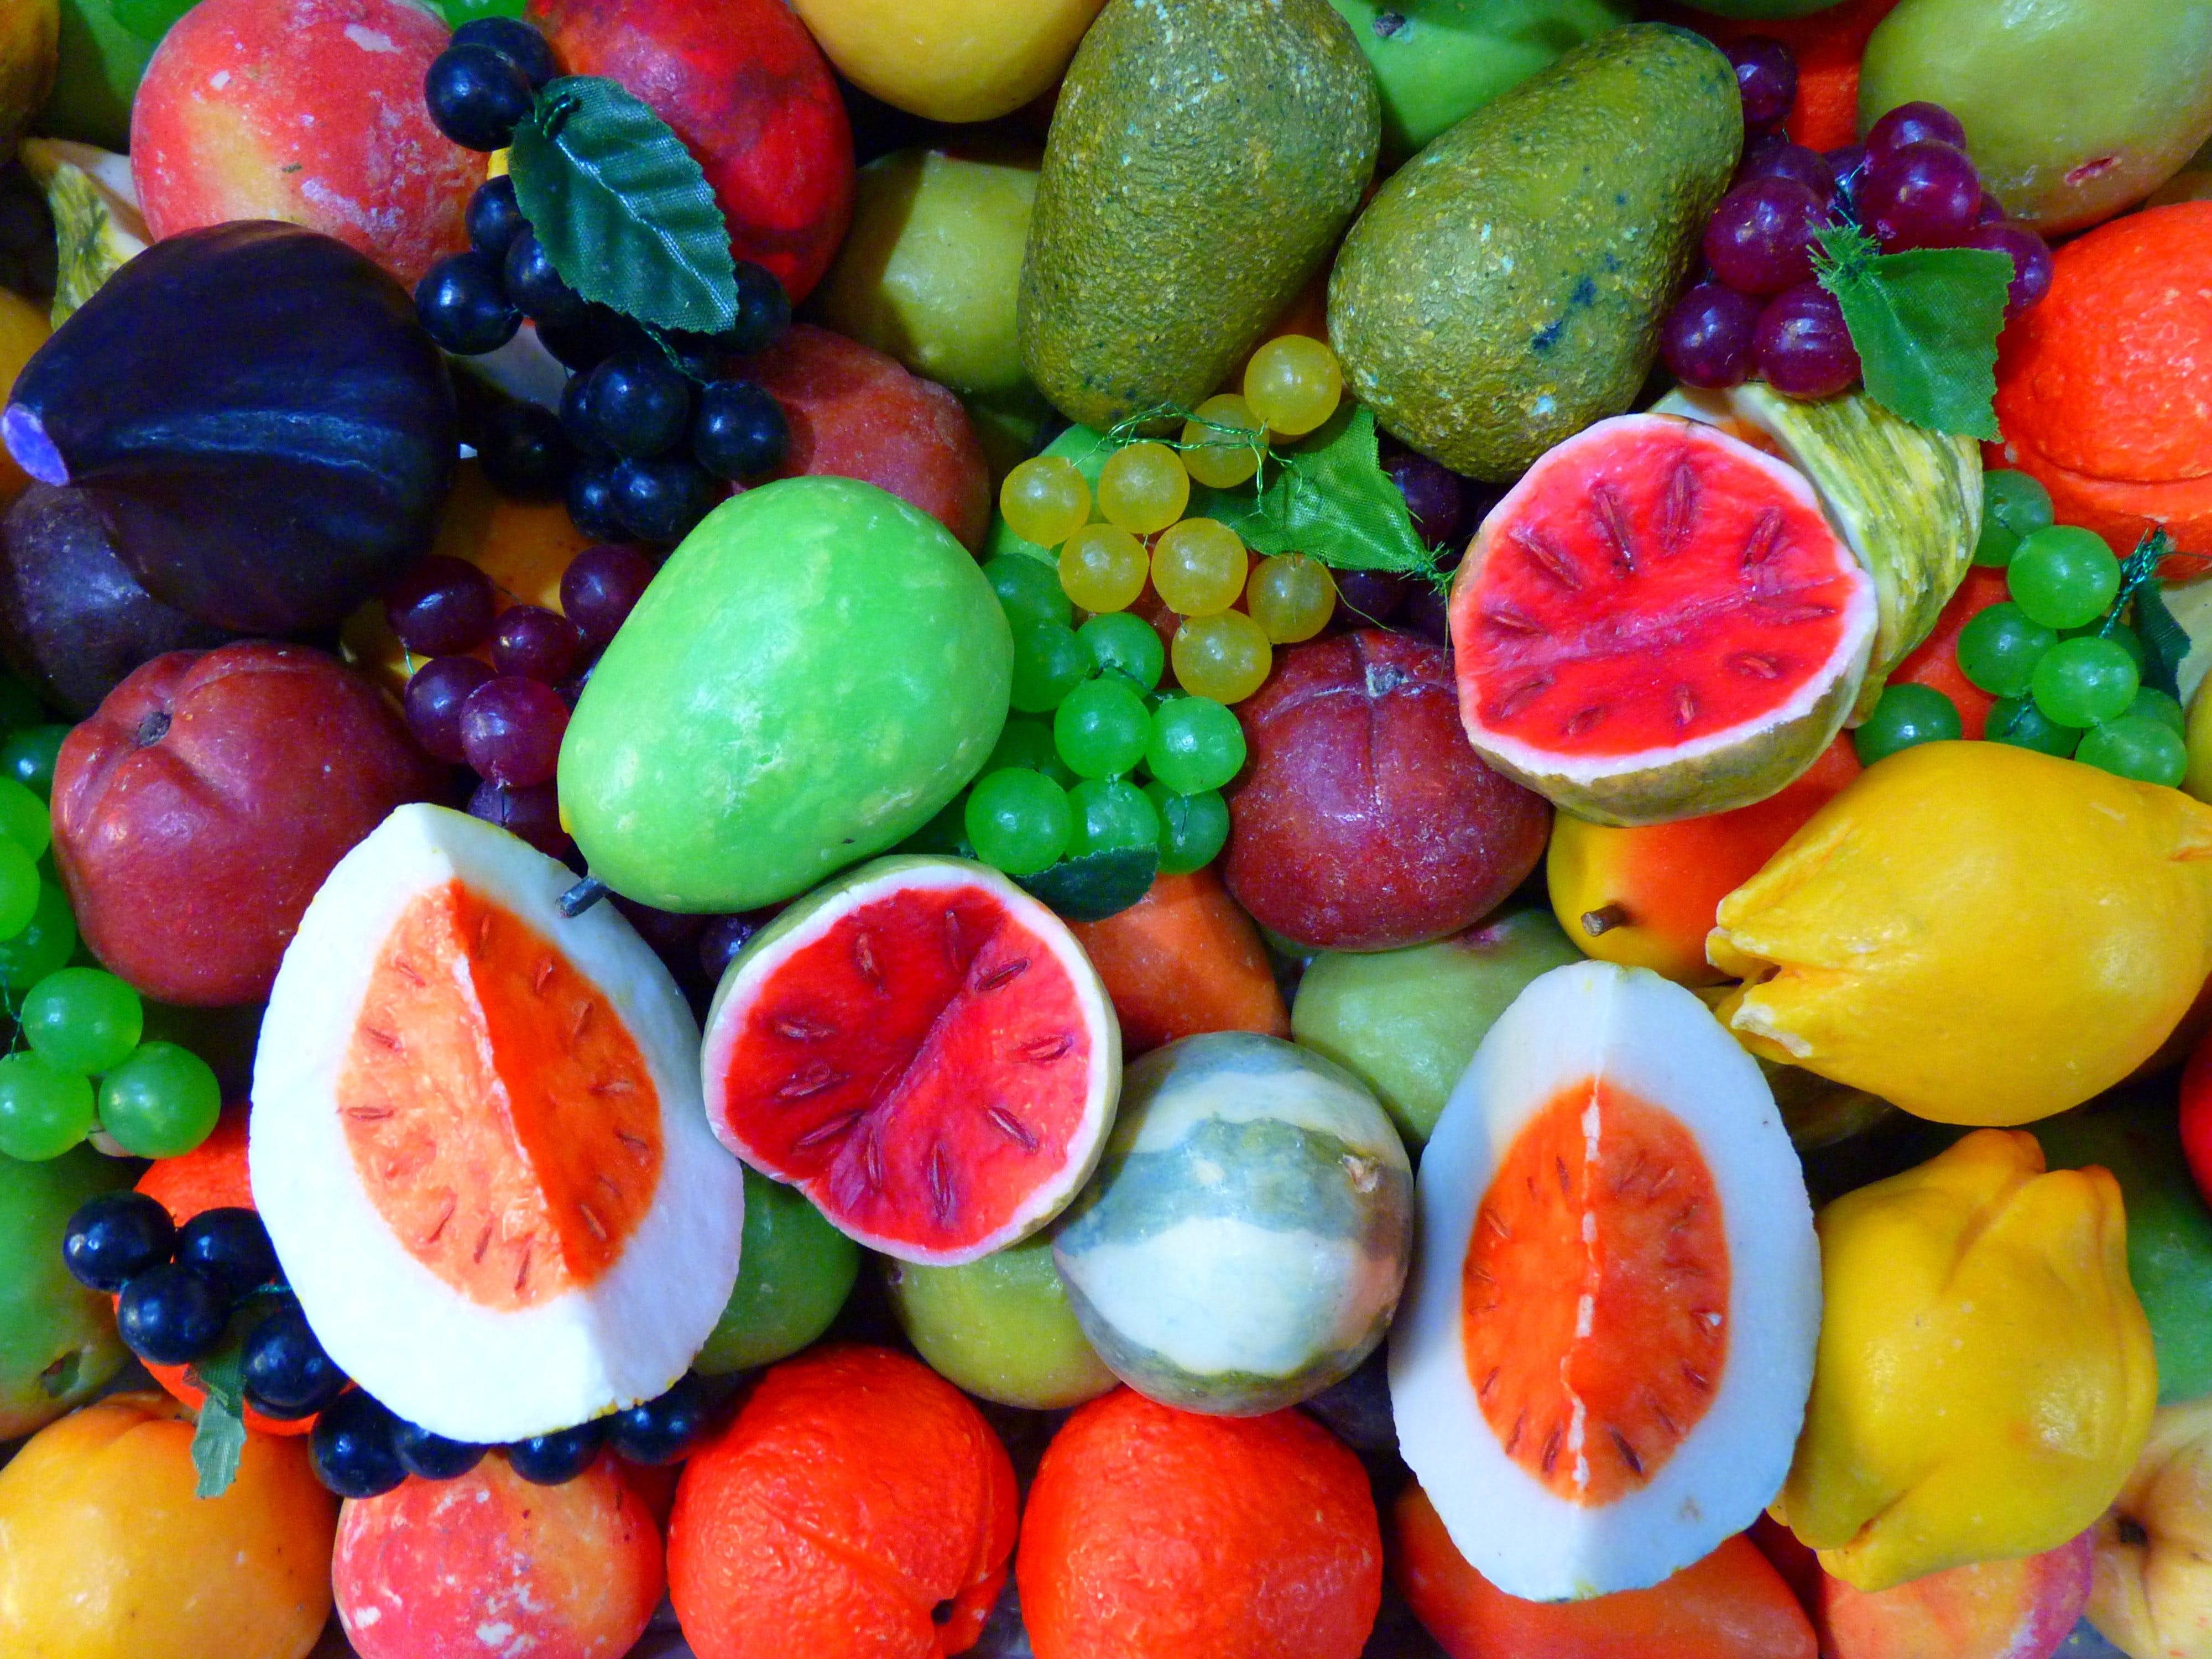 Red Yellow and Green Fruits